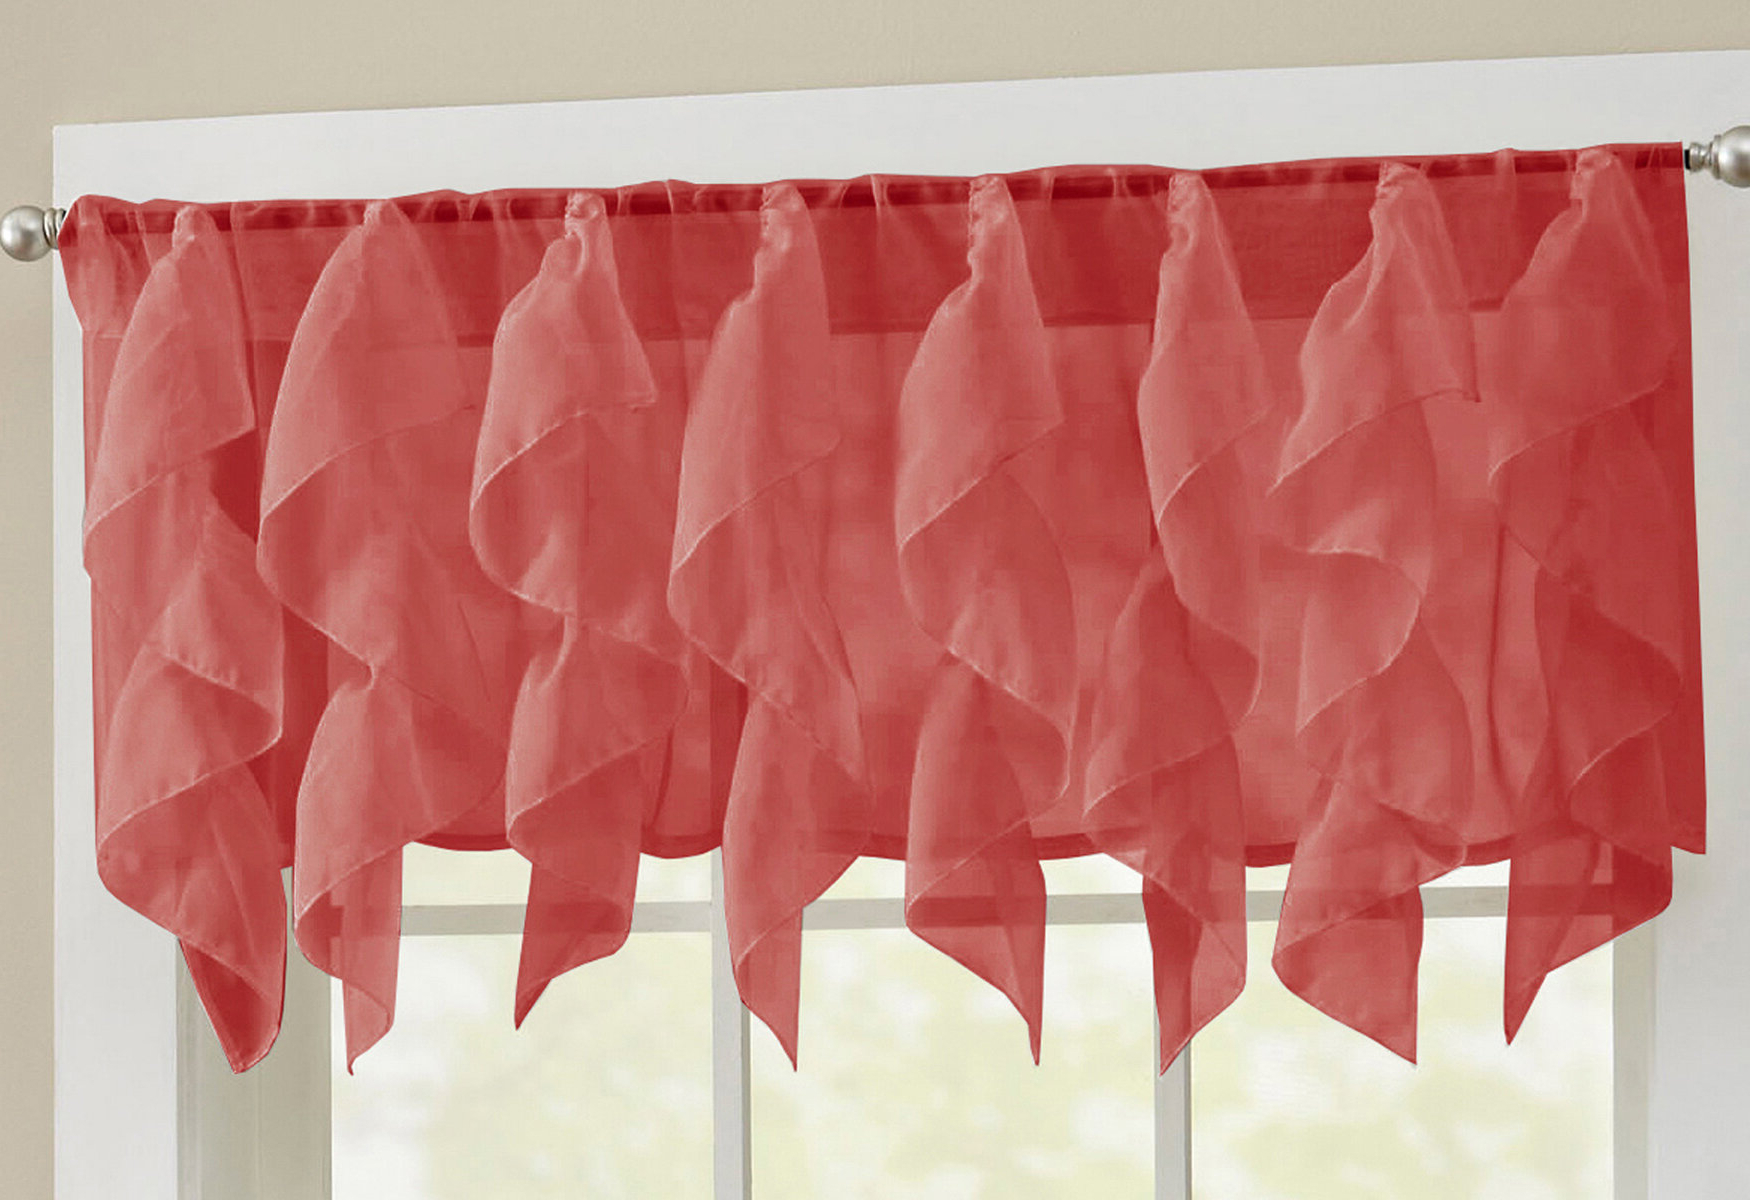 Sheer Voile Waterfall Ruffled Tier Single Curtain Panels Throughout Well Known Elegant Sheer Voile Vertical Ruffle Window Kitchen Tier Curtain (View 14 of 20)